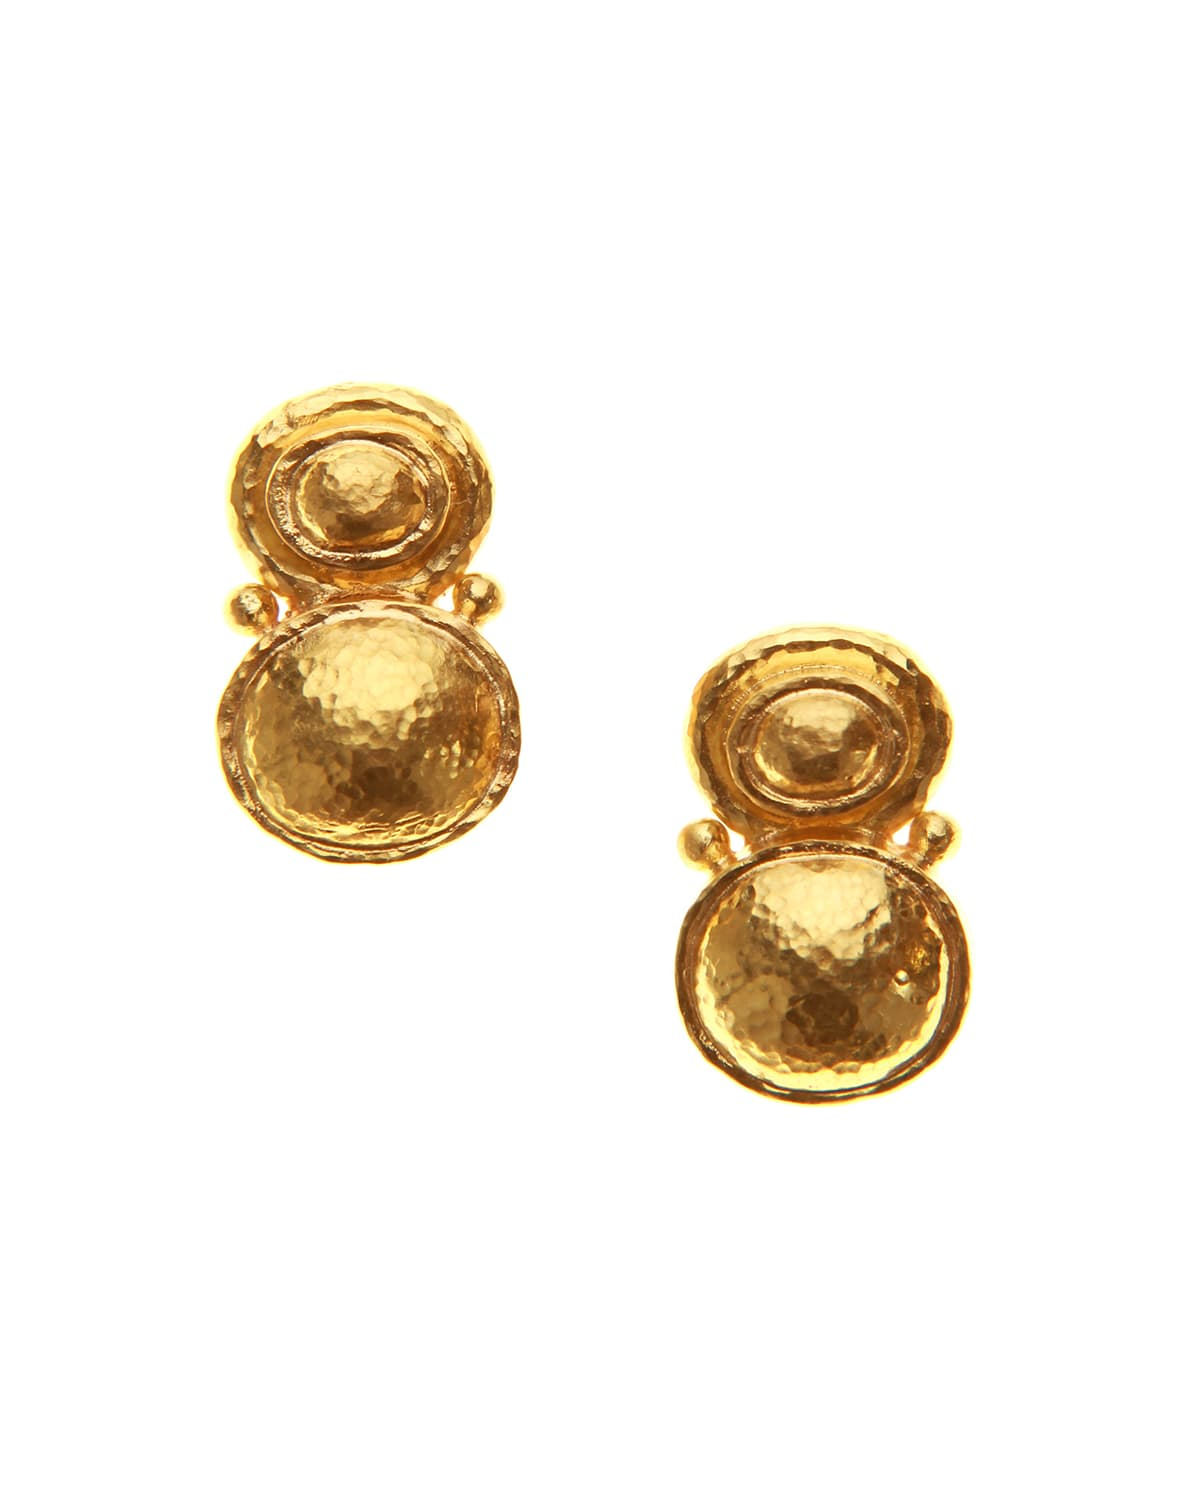 19k Yellow Gold Stacked Horizontal Oval Earrings